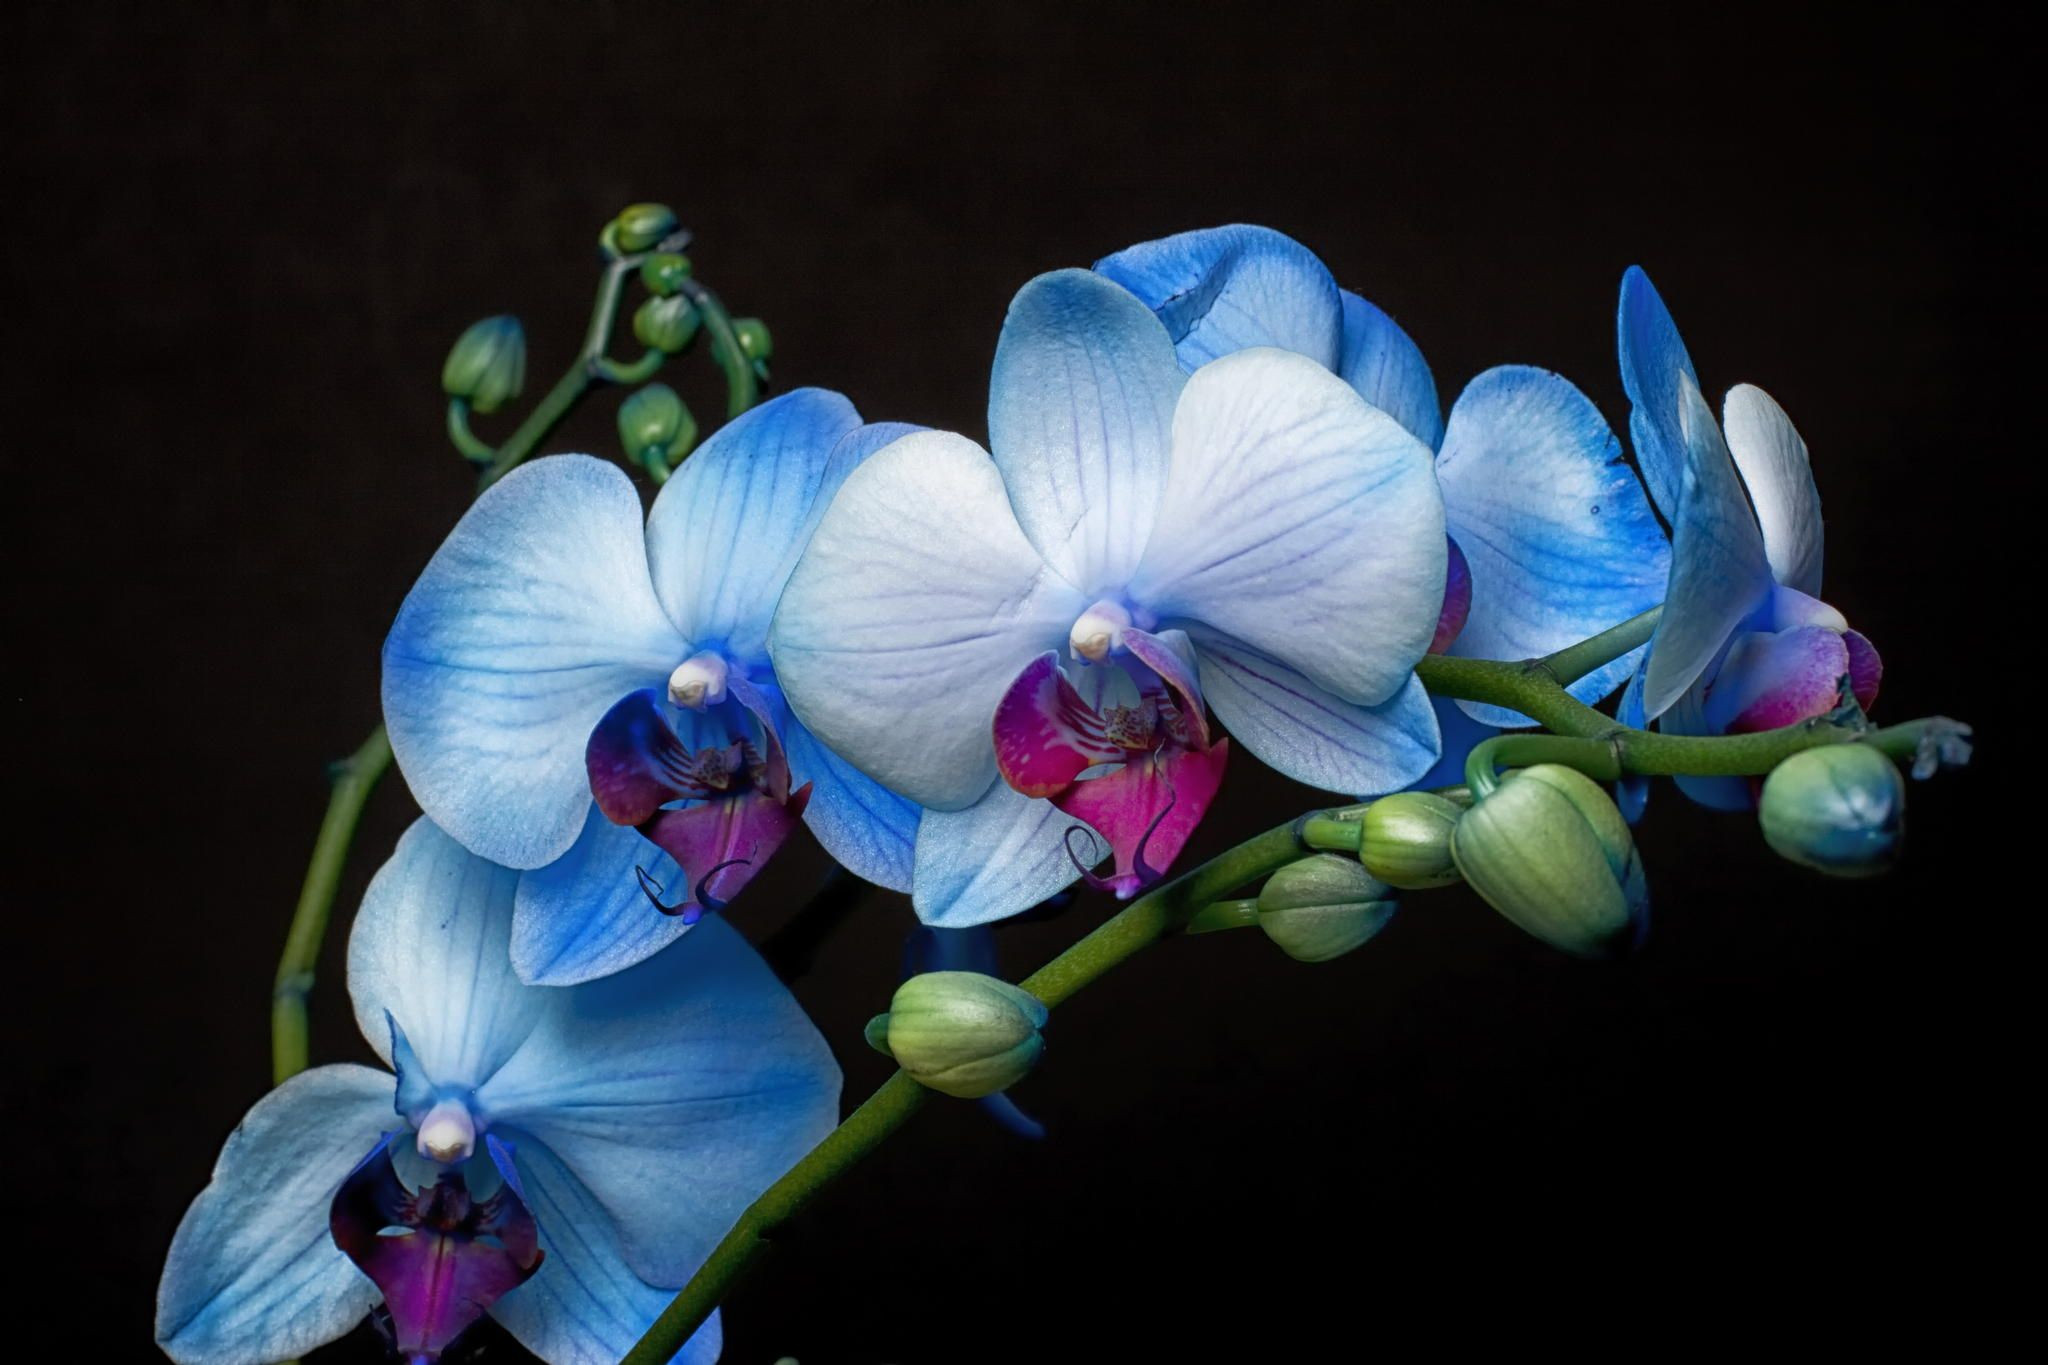 Blue Orchids by Chris Miranda on 500px